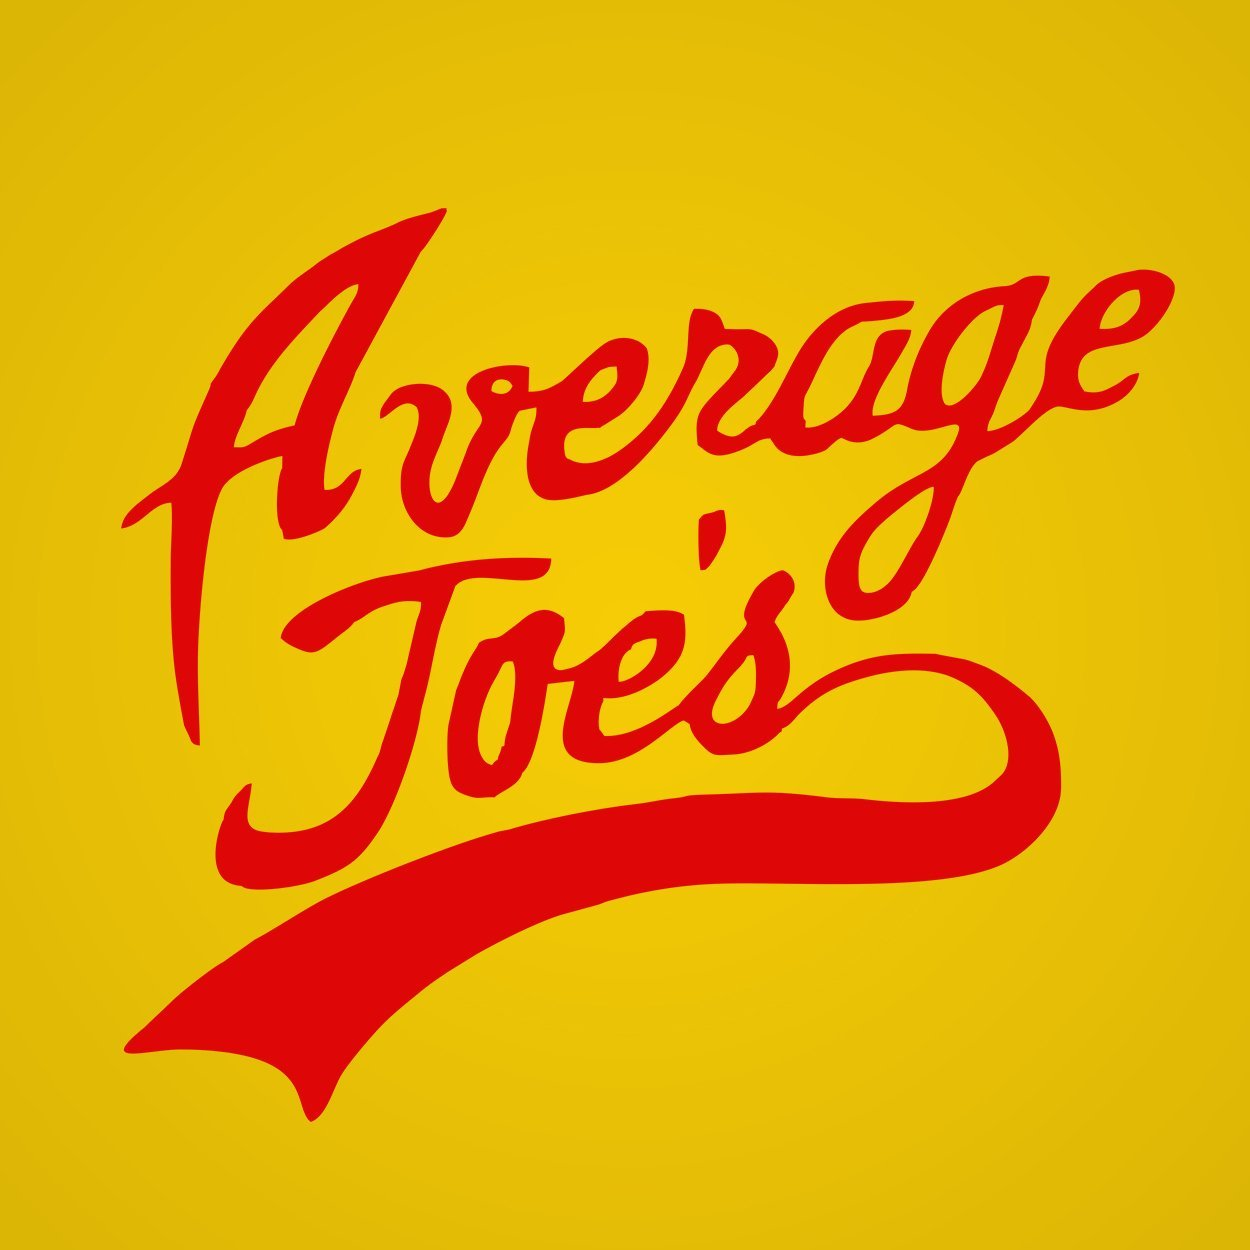 Average Joes Gym - DonkeyTees